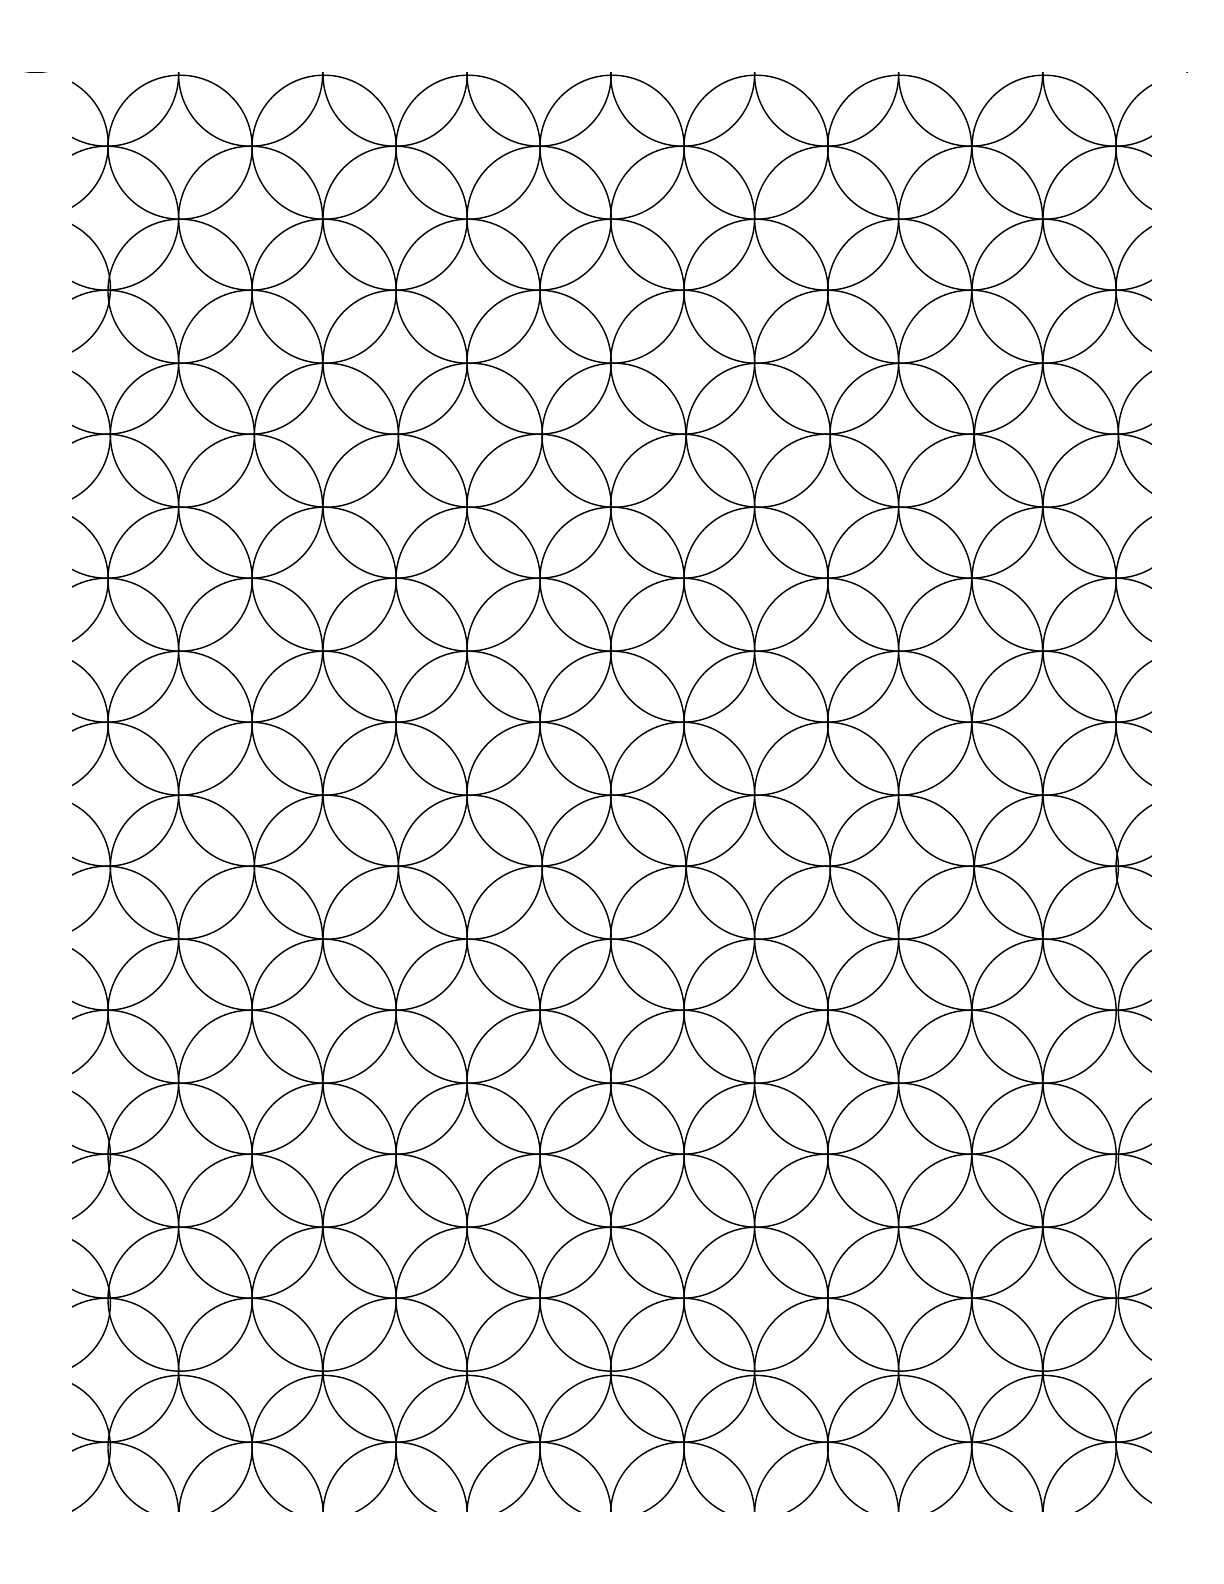 overlapping circles graph paper free download